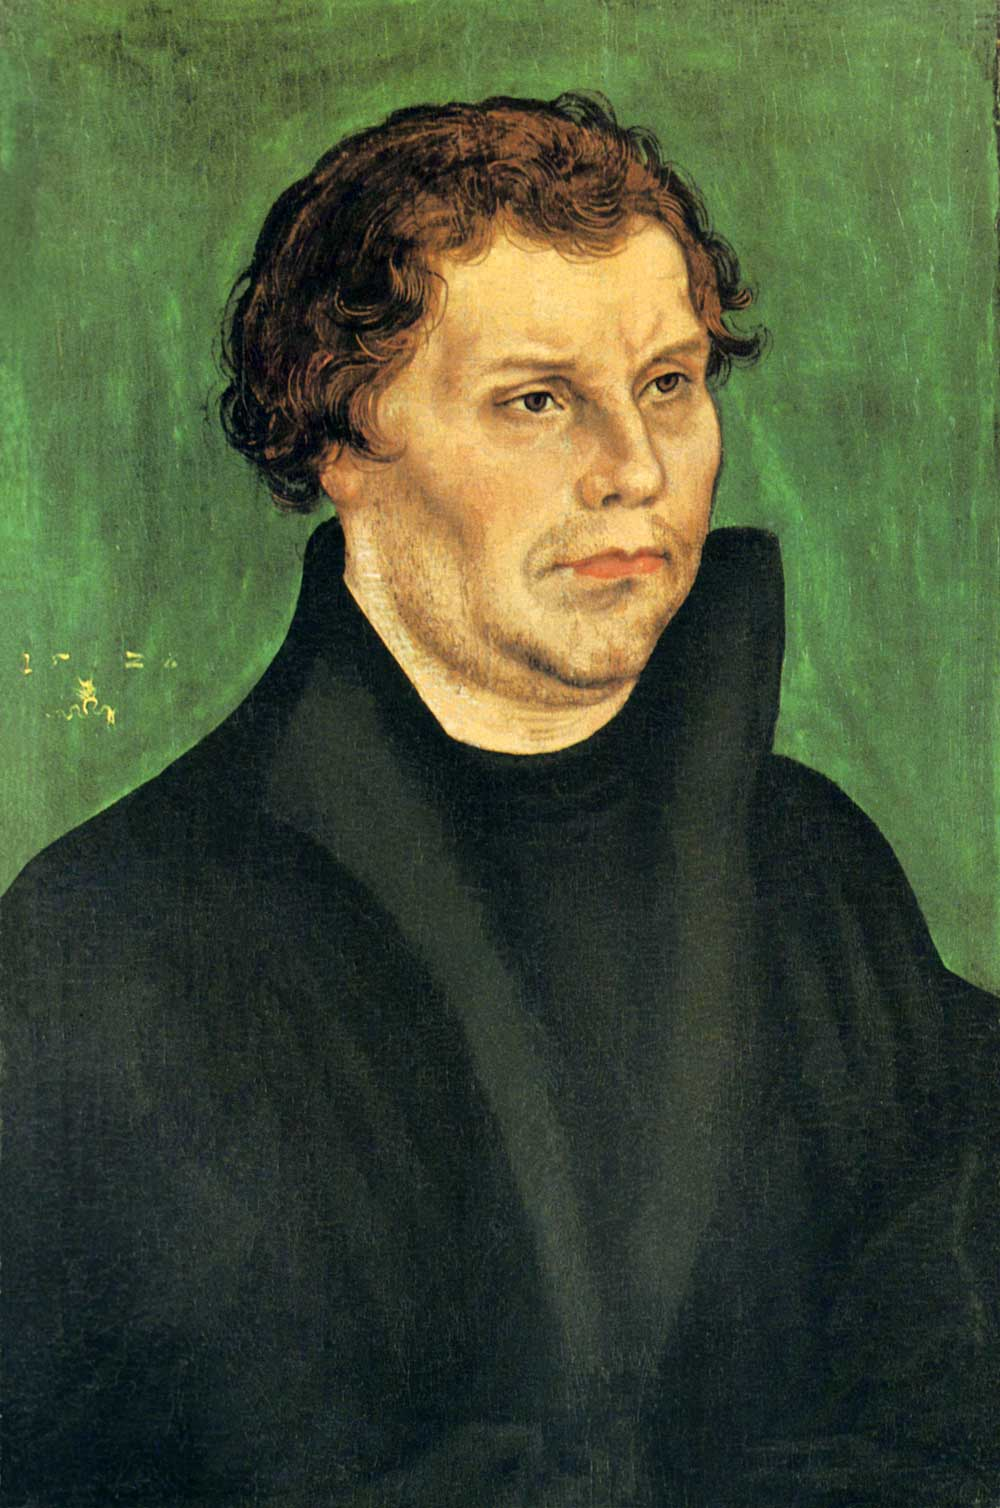 Luther, Lucas Cranach the Elder, 1526.